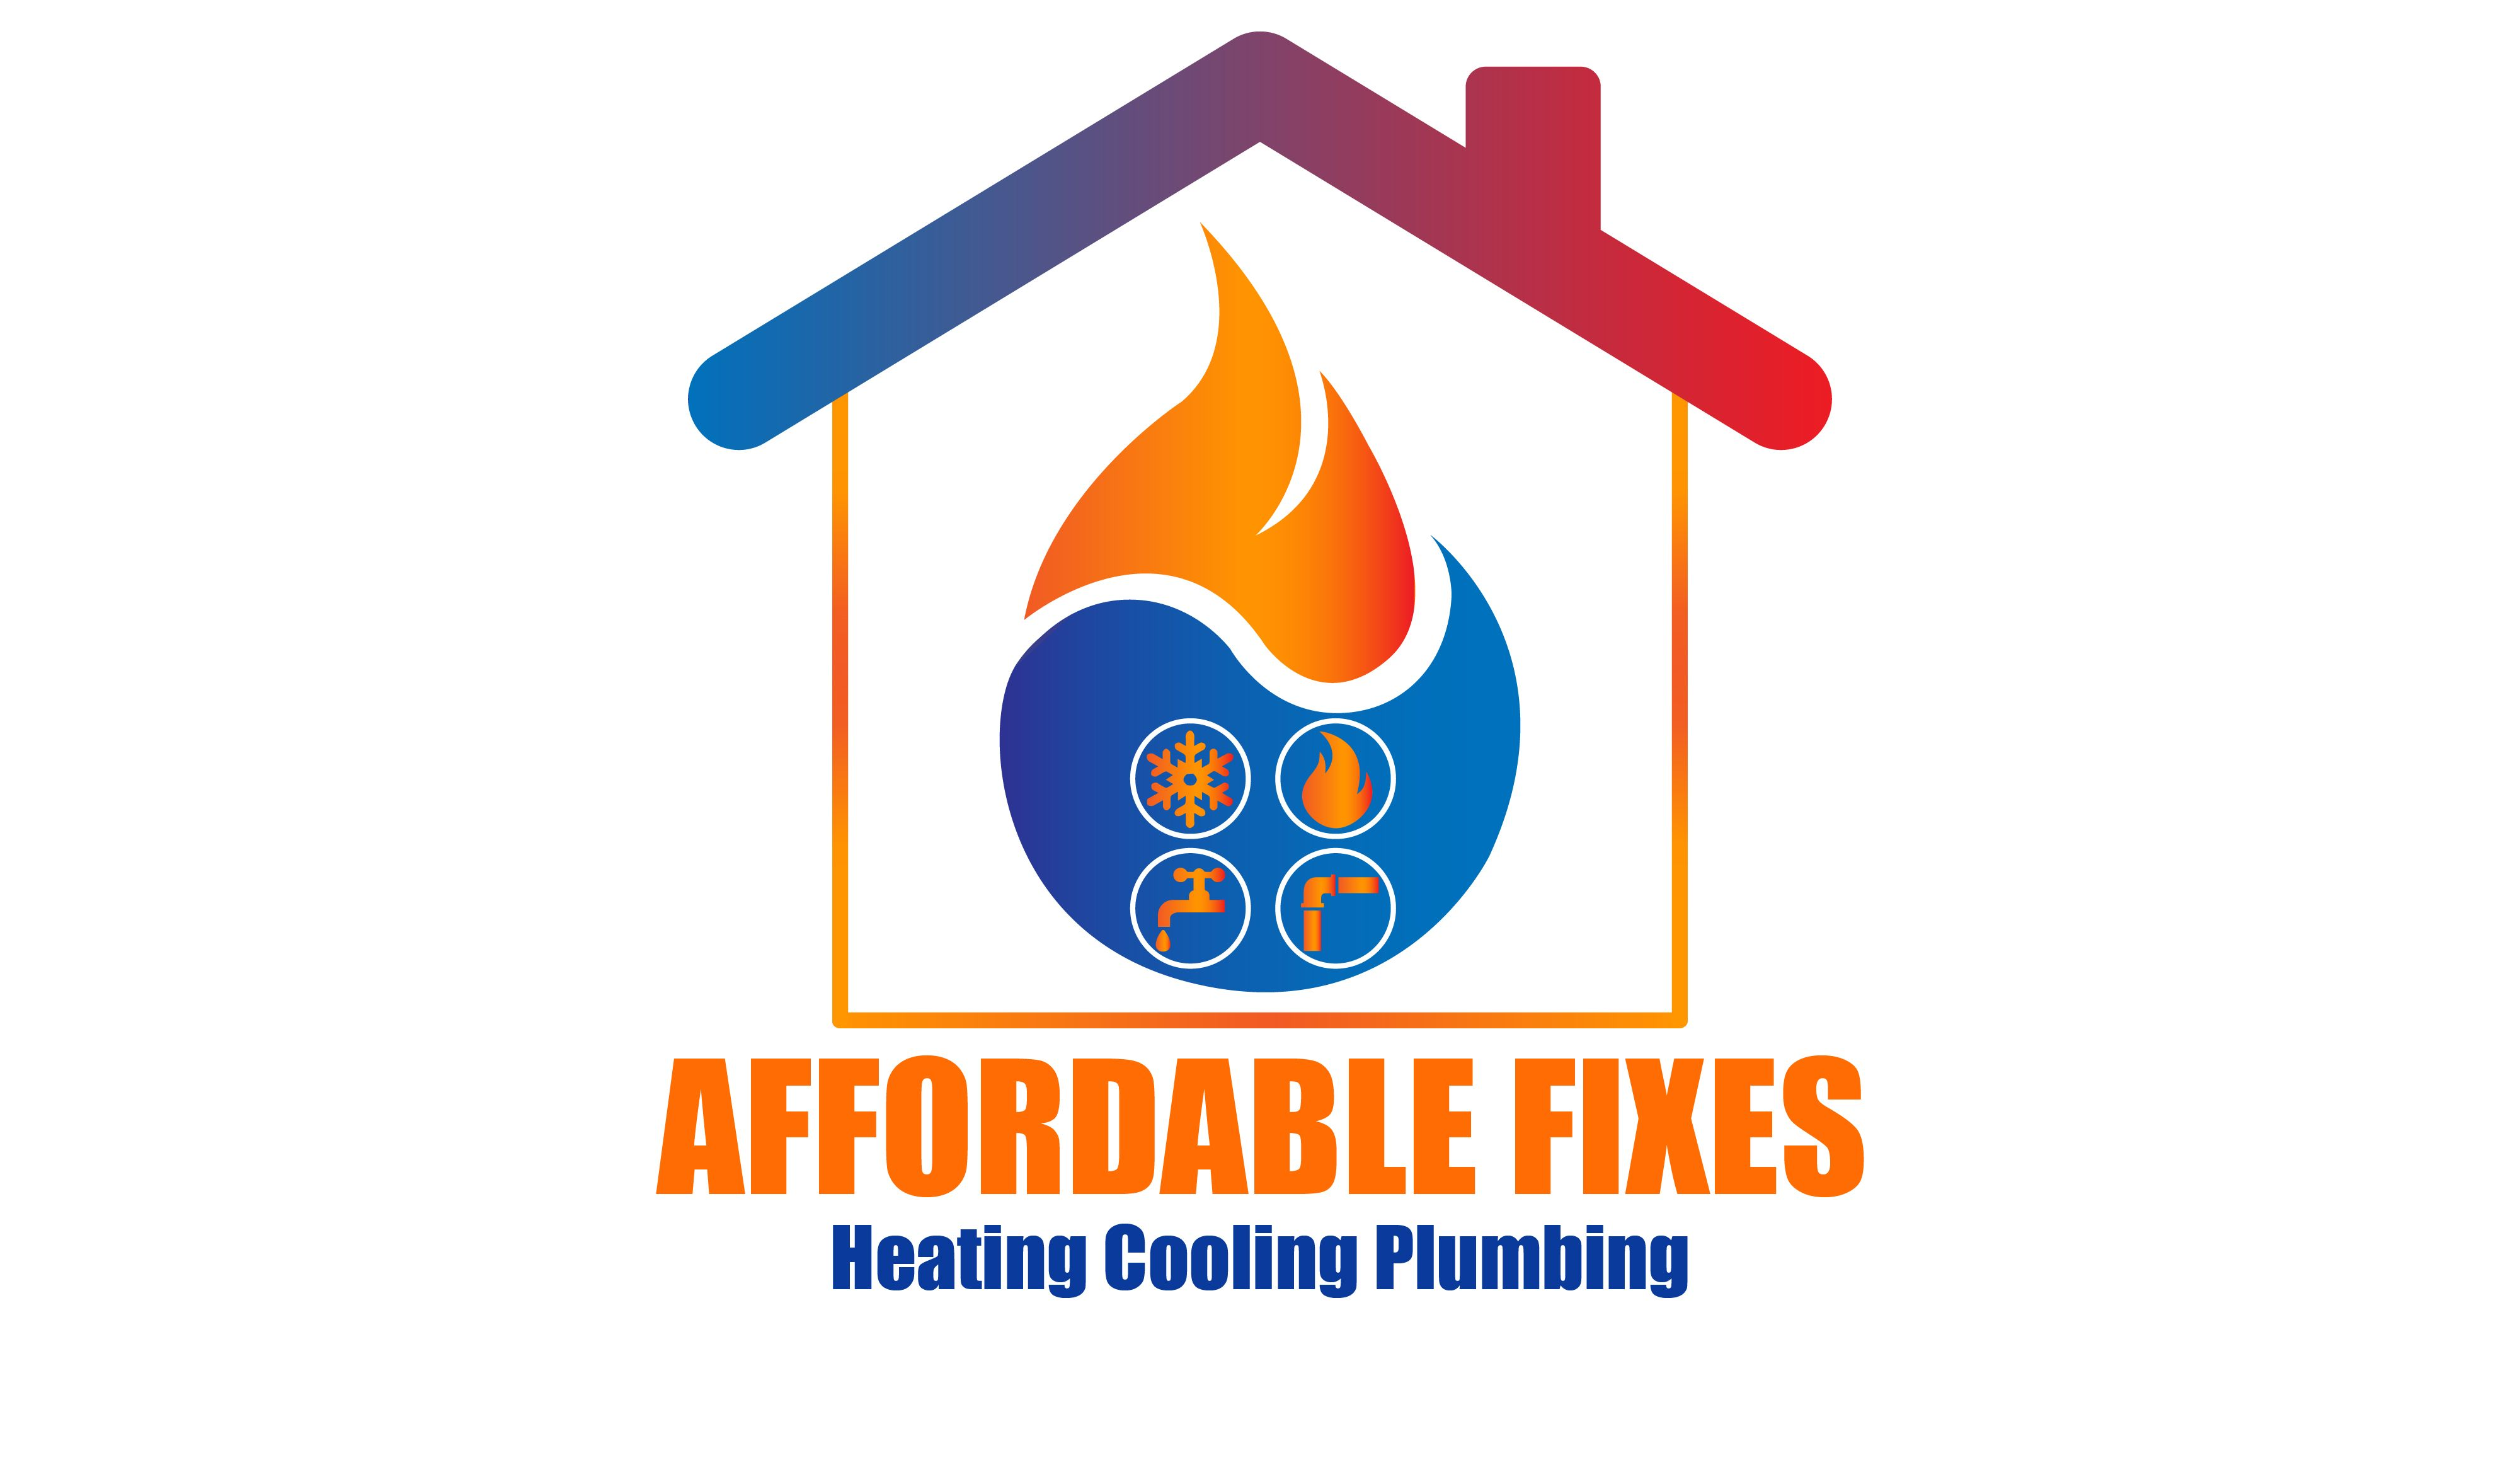 Affordable Fixes, LLC 101 Geiger Rd. Unit 8 Philadelphia